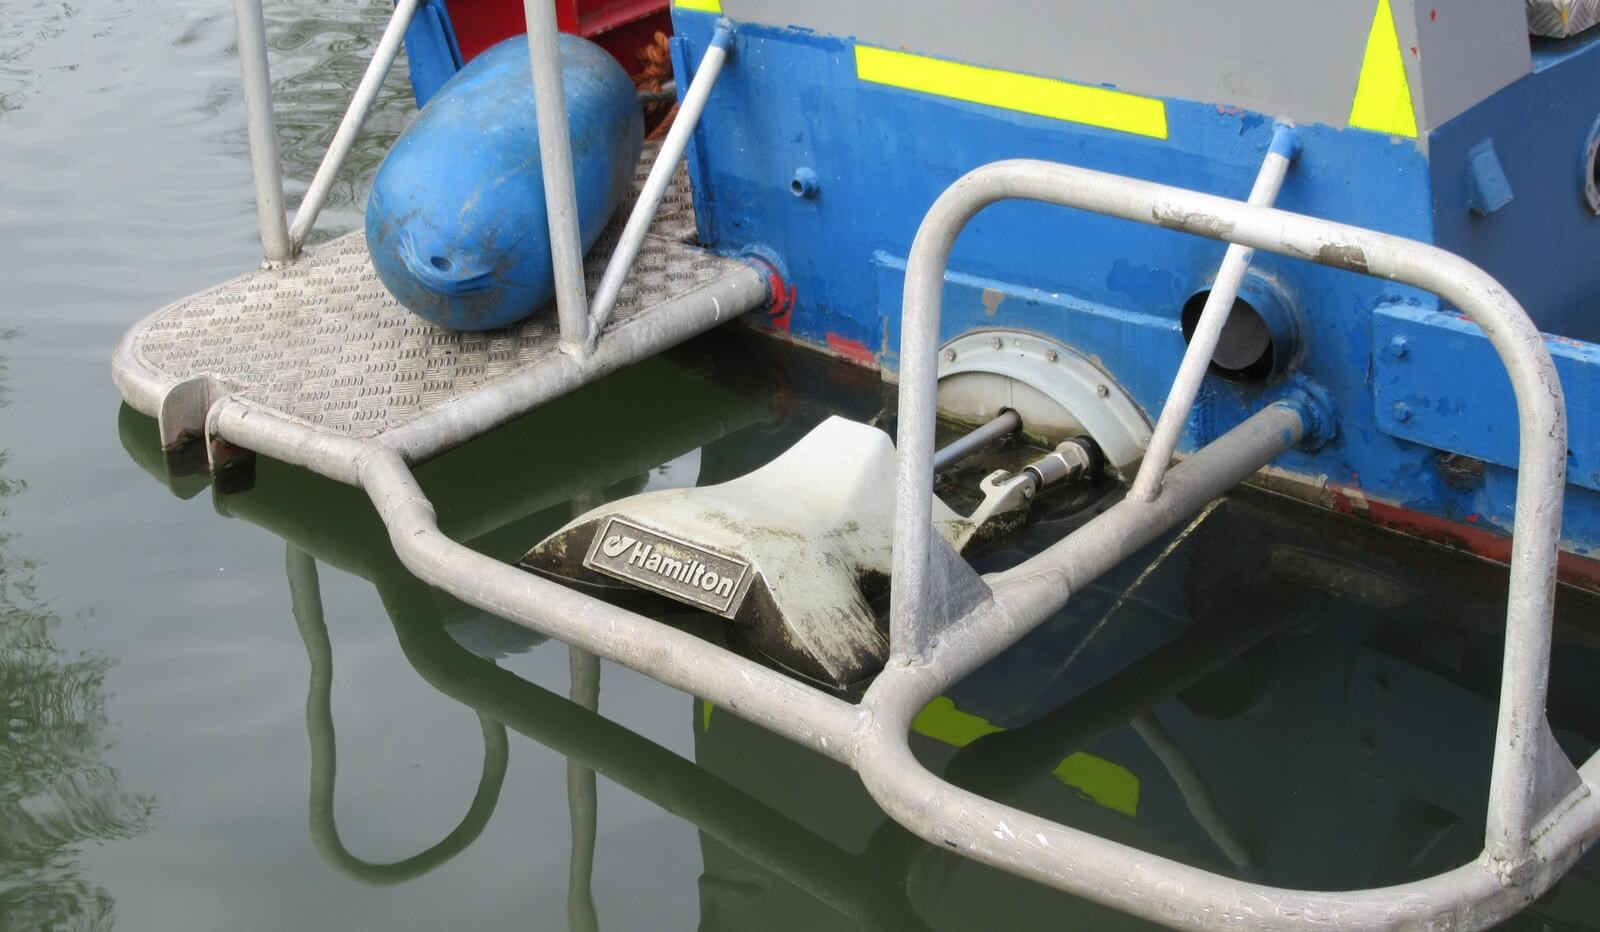 Waterjet second hand Patrol/survey boat